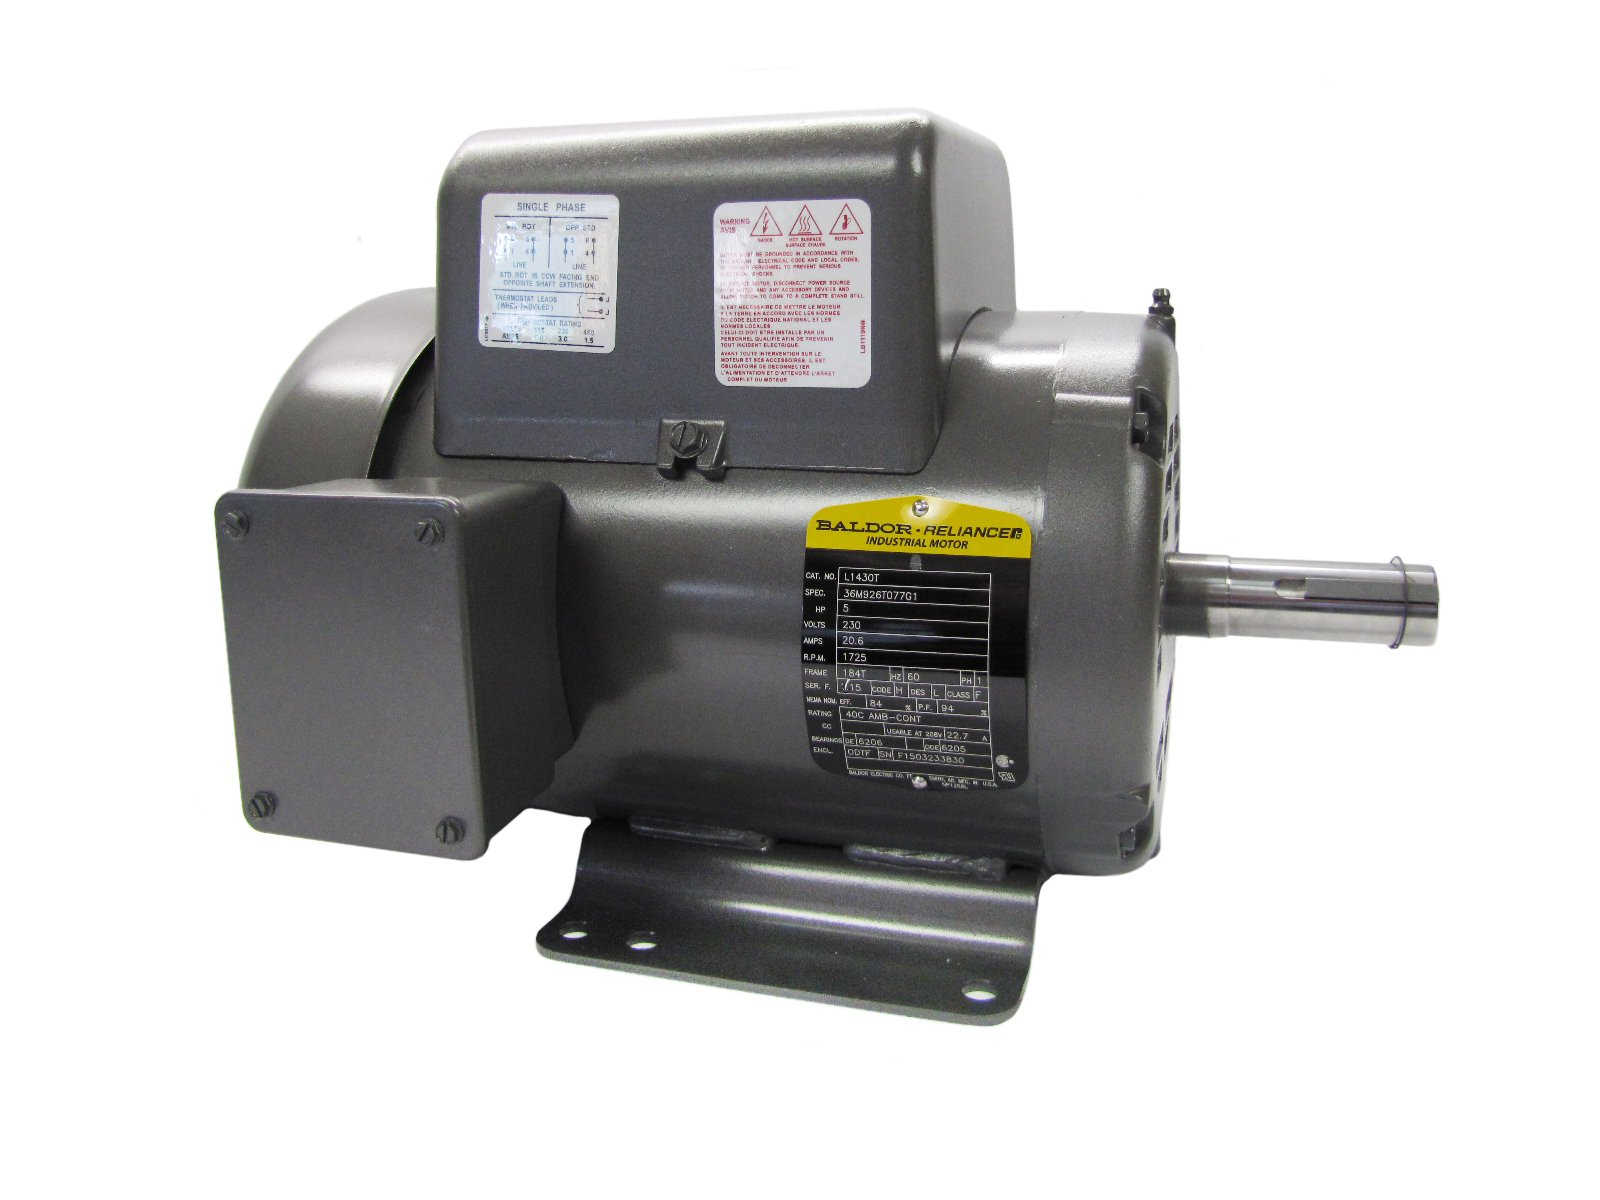 Cheap Baldor 5hp Motor, find Baldor 5hp Motor deals on line at ... on motor reversing switch wiring diagram, 220 single phase wiring diagram, 230v single phase wiring diagram, leeson motor wiring diagram, fasco motor wiring diagram, circuit diagram, craftsman motor wiring diagram, peerless motor wiring diagram, electric motor diagram, 3 phase motor wiring diagram, dc generator wiring diagram, marathon motor wiring diagram, dc motor diagram, 240 single phase wiring diagram, ac motor diagram, fan motor wiring diagram, mercury outboard motor wiring diagram, motor starter wiring diagram, induction motor wiring diagram, motor start relay wiring diagram,